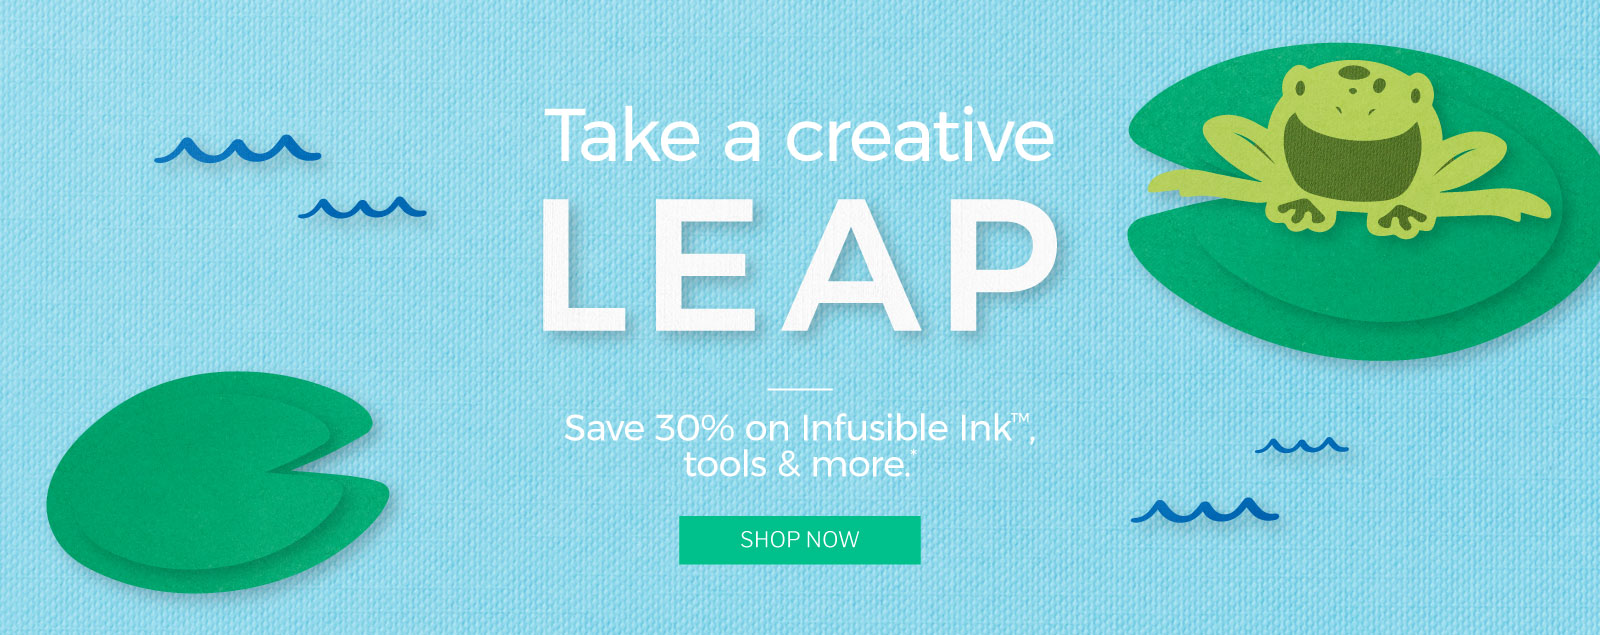 Take a creative leap.